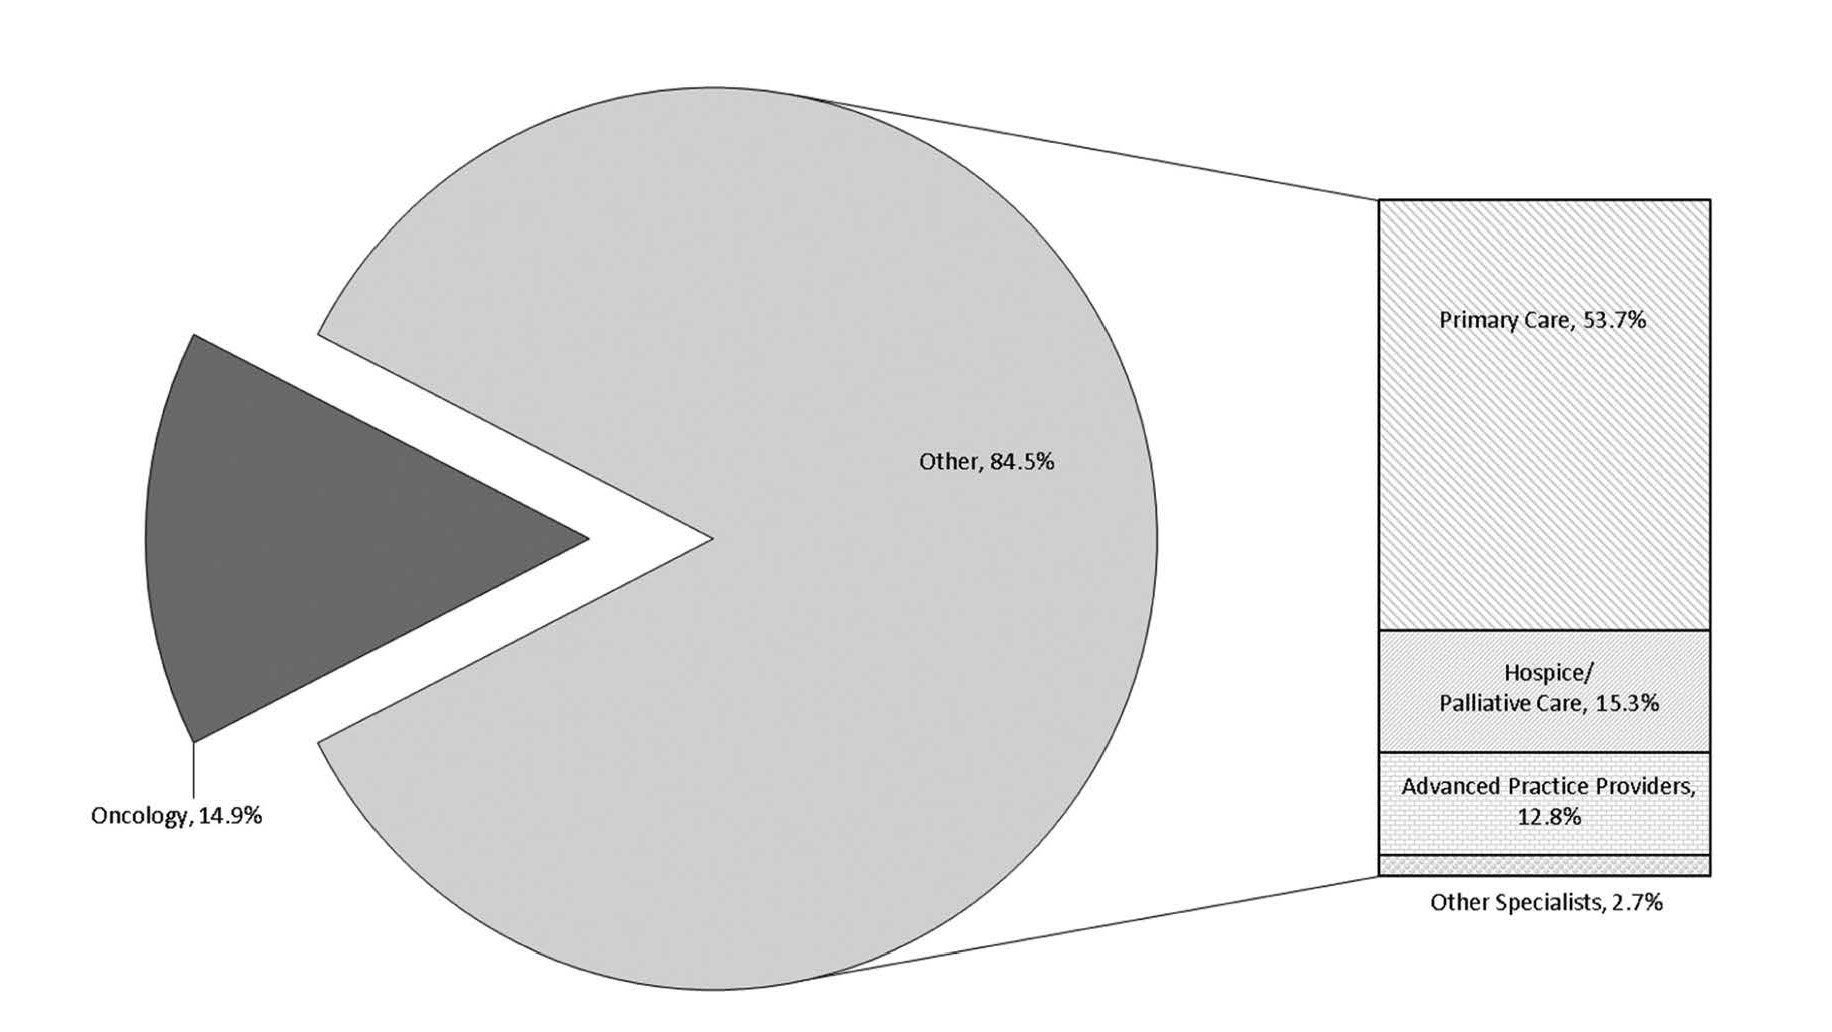 Figure 1. Final Physician Orders for Life-Sustaining Treatment (POLST) forms (n = 6145) by signer specialty  Lammers A, Zive DM, Tolle SW, Fromme EK.The Oncology Specialist's Role in POLST Form Completion.  American Journal of Hospice and Palliative Medicine. First published online. doi:10.1177/1049909117702873